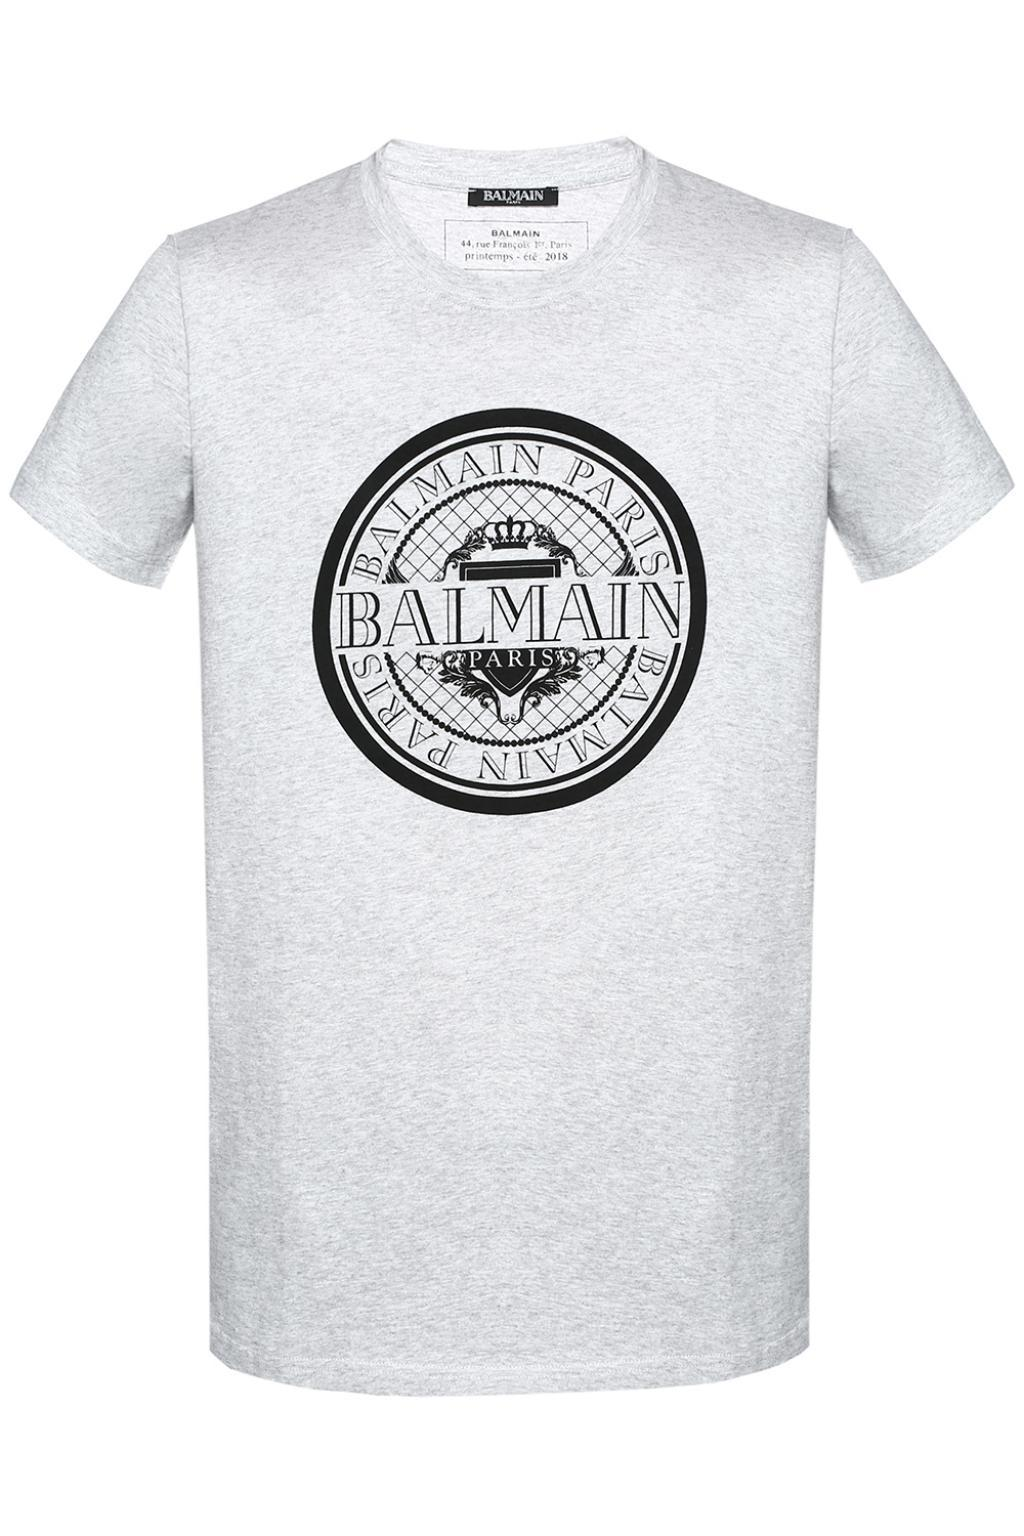 2b2c37ebf69 Balmain T Shirt Mens Selfridges | Toffee Art